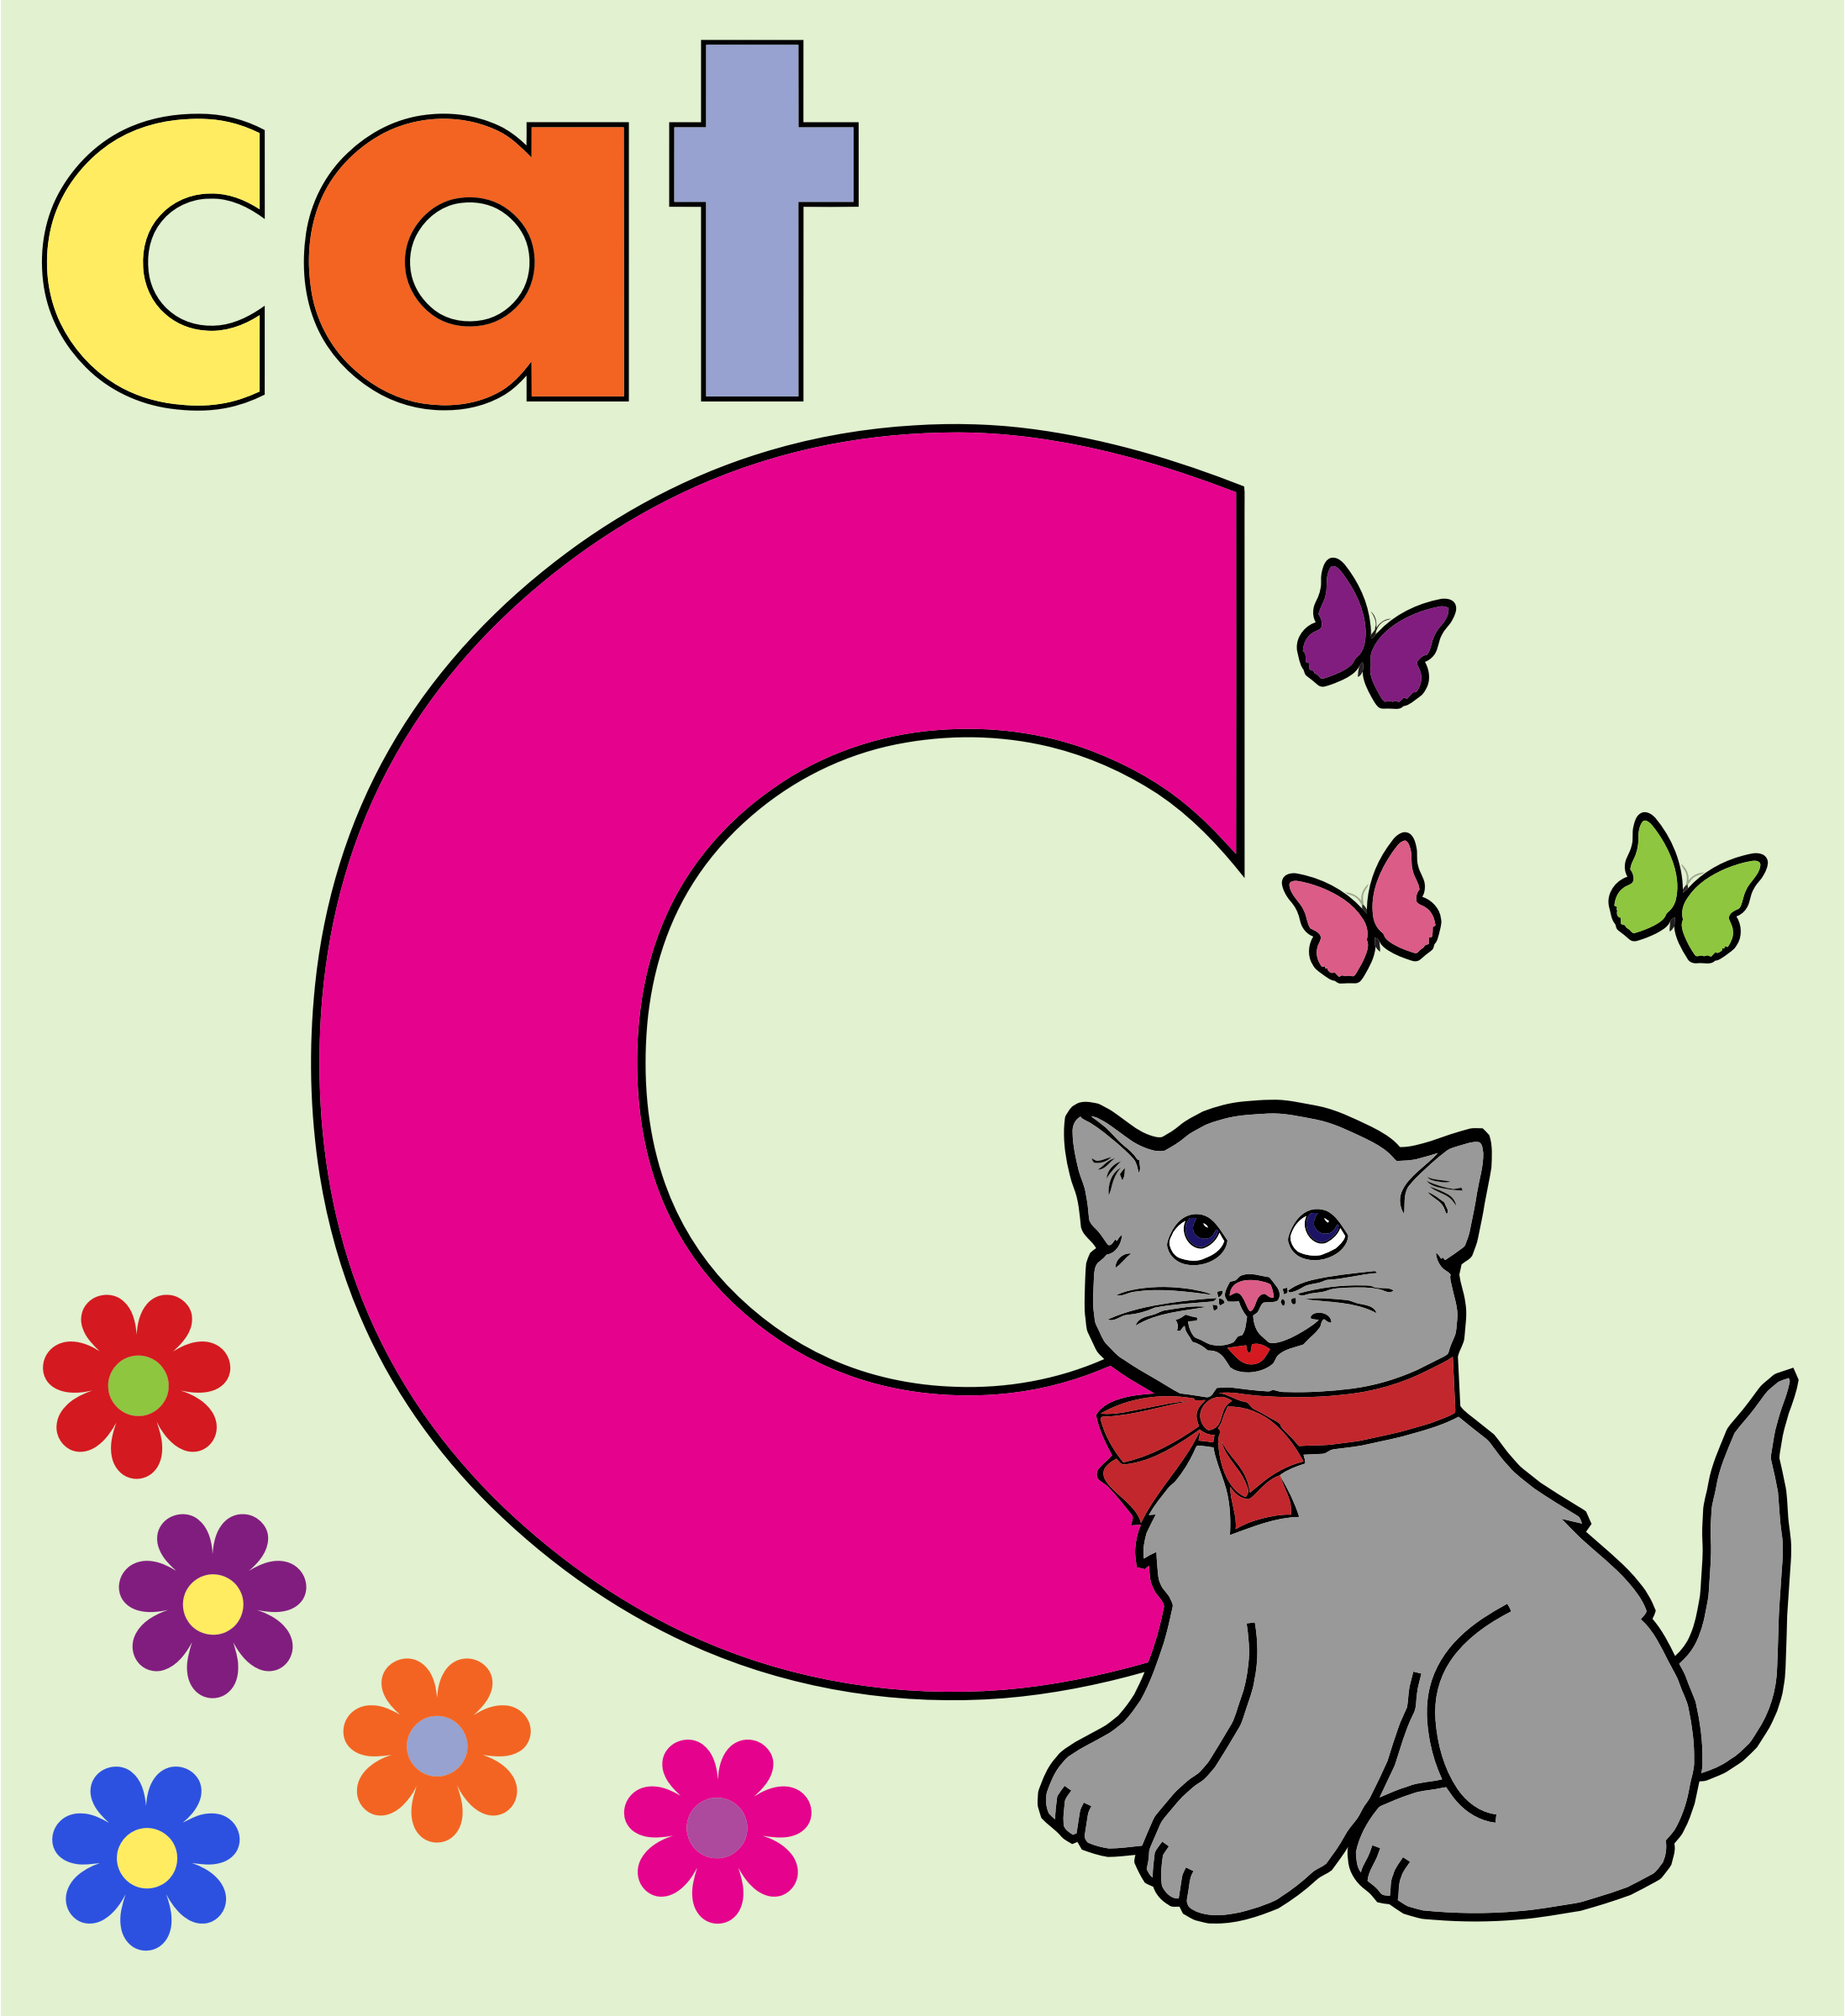 Cat Alphabet Letter C by GDJ